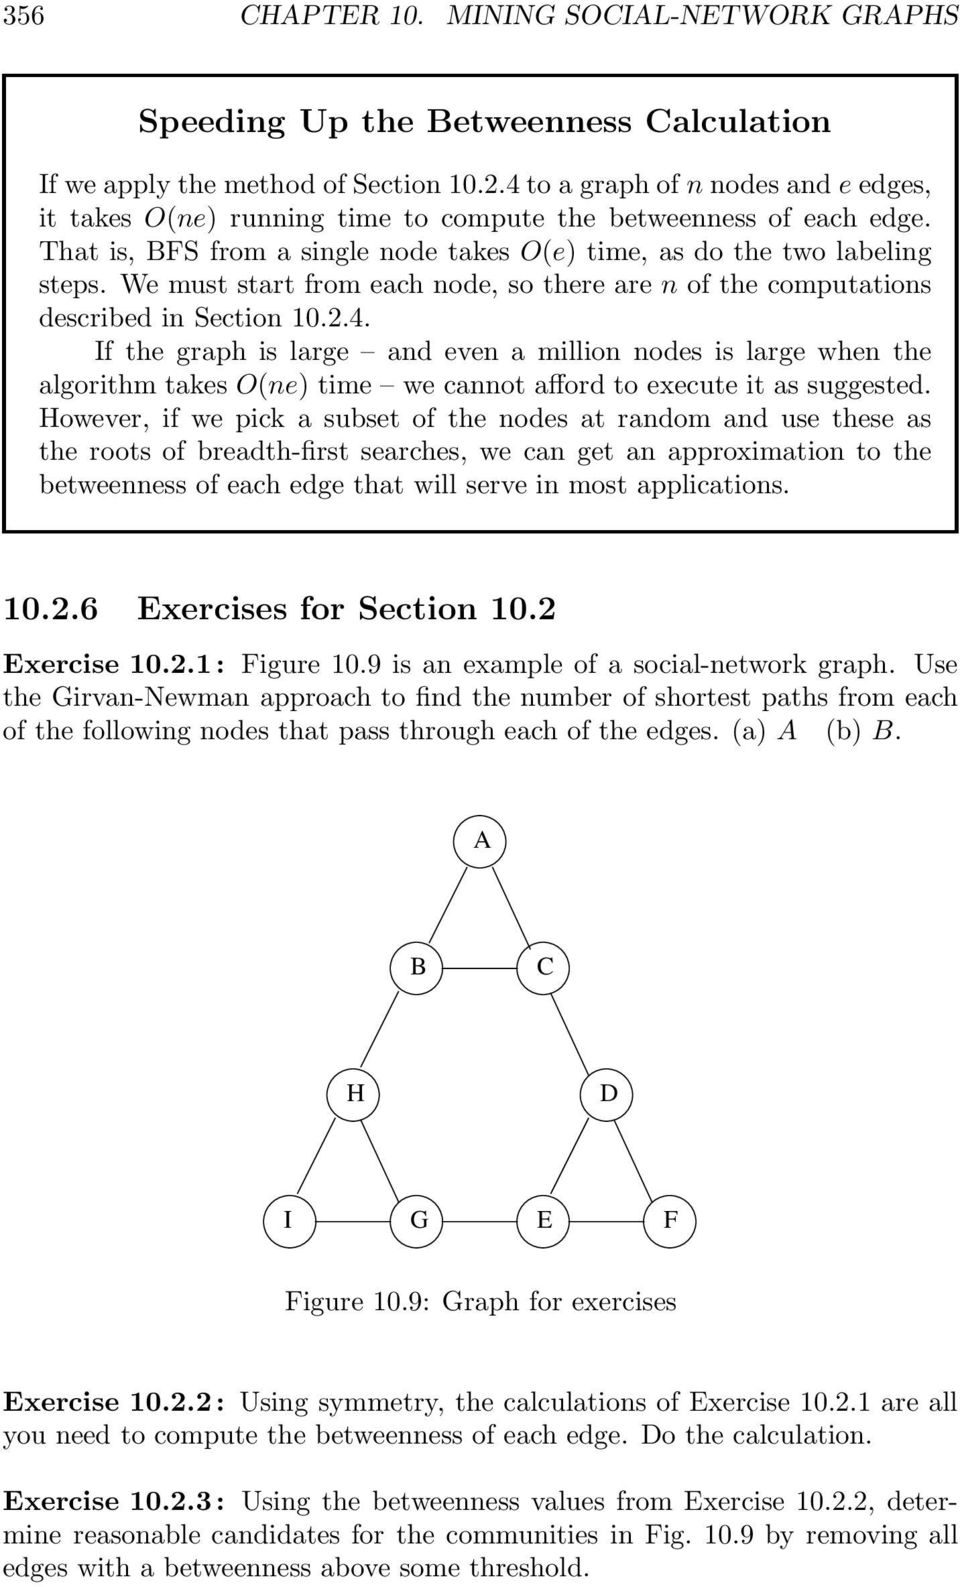 We must start from each node, so there are n of the computations described in Section 10.2.4.